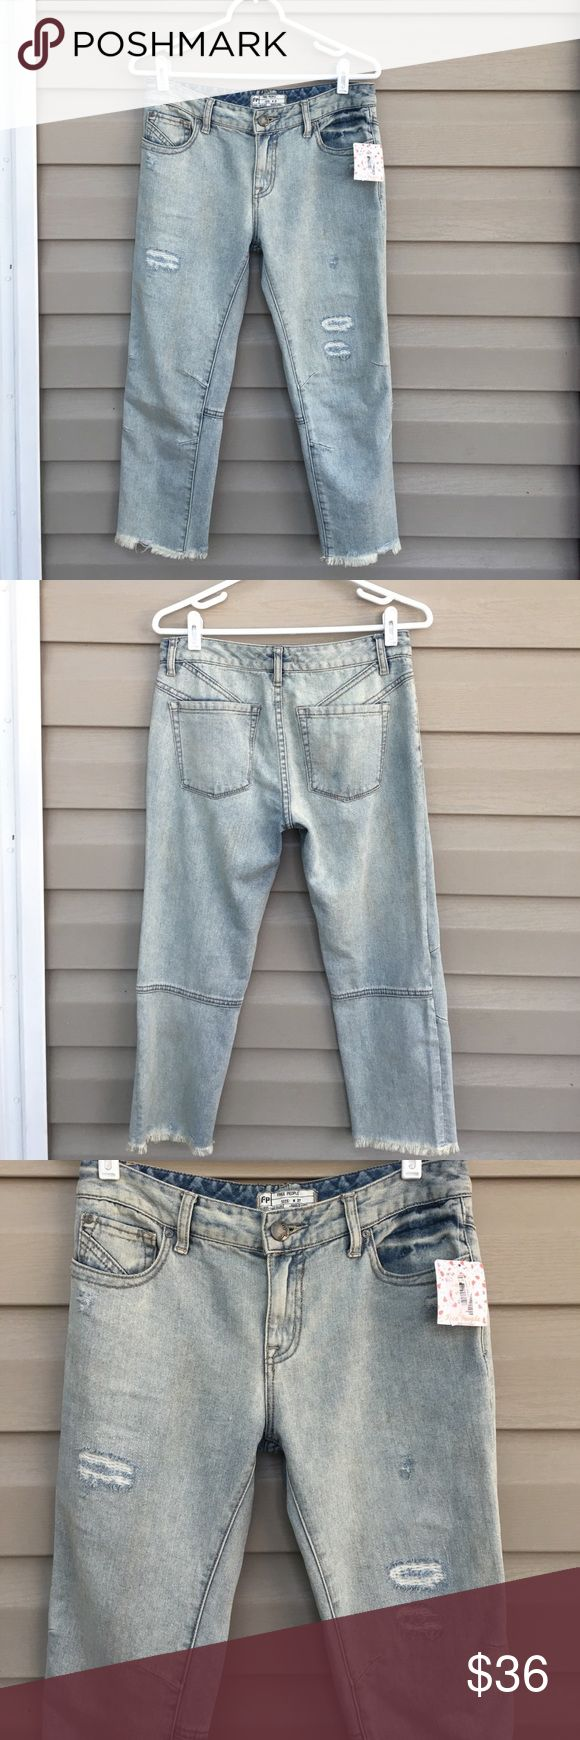 "Free People women's jeans NWT NWT women's jeans waist 27""length 22"",100% cotton, distressed , bleached with no stains or unintentional holes. Very soft Free People Jeans Ankle & Cropped"